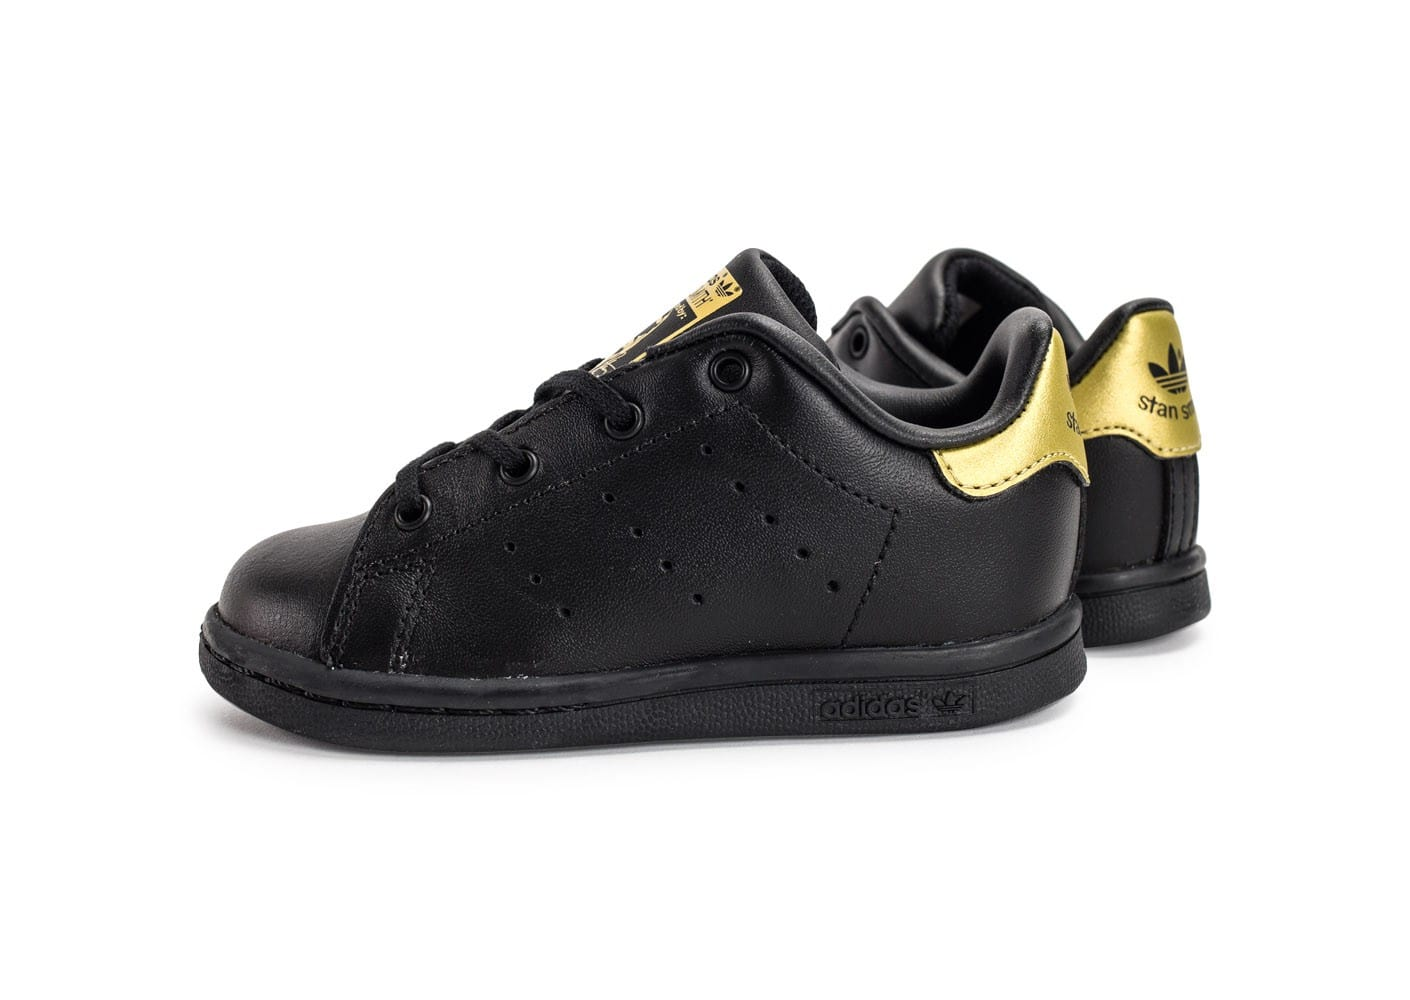 adidas stan smith b b noire et or chaussures adidas chausport. Black Bedroom Furniture Sets. Home Design Ideas